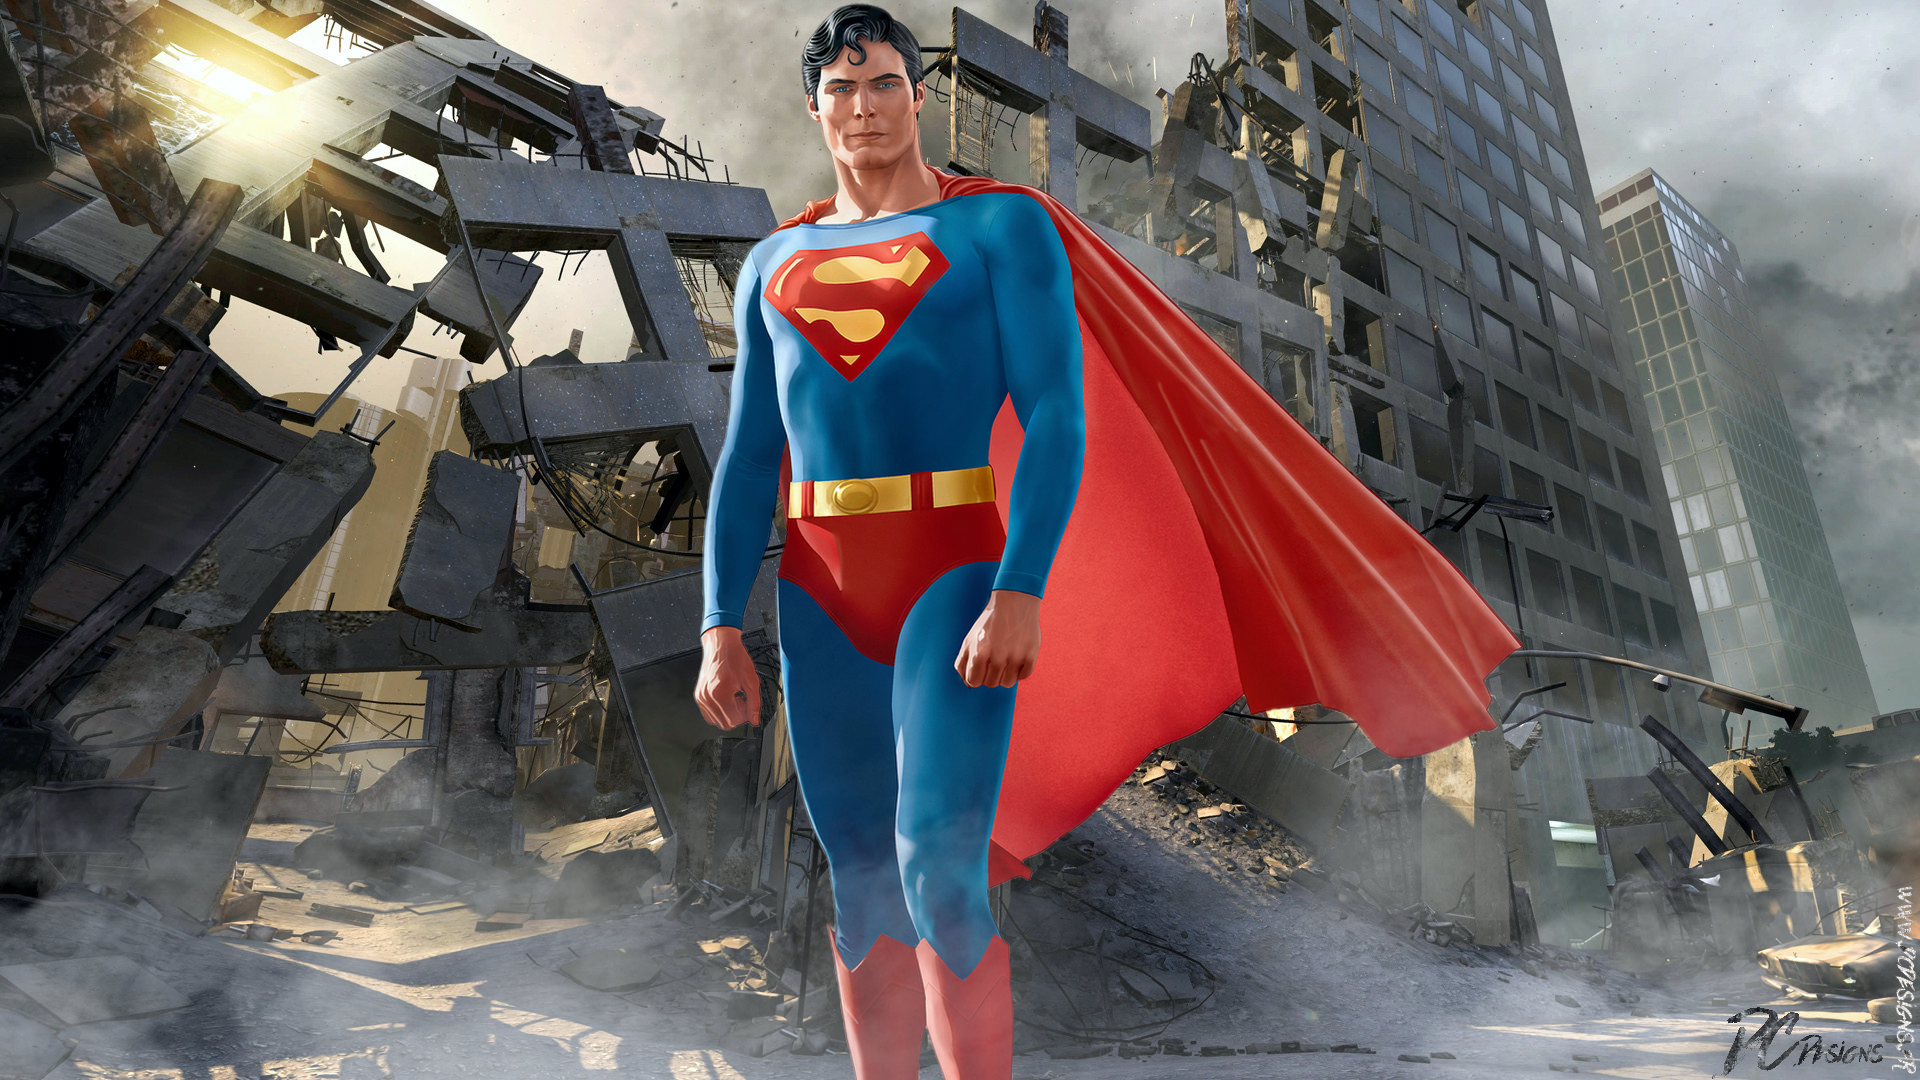 superman the story of christopher reeve essay Yet this fairy tale took a tragic turn when a fall from a horse left christopher reeve through the christopher and dana reeve essay, based on a phone.